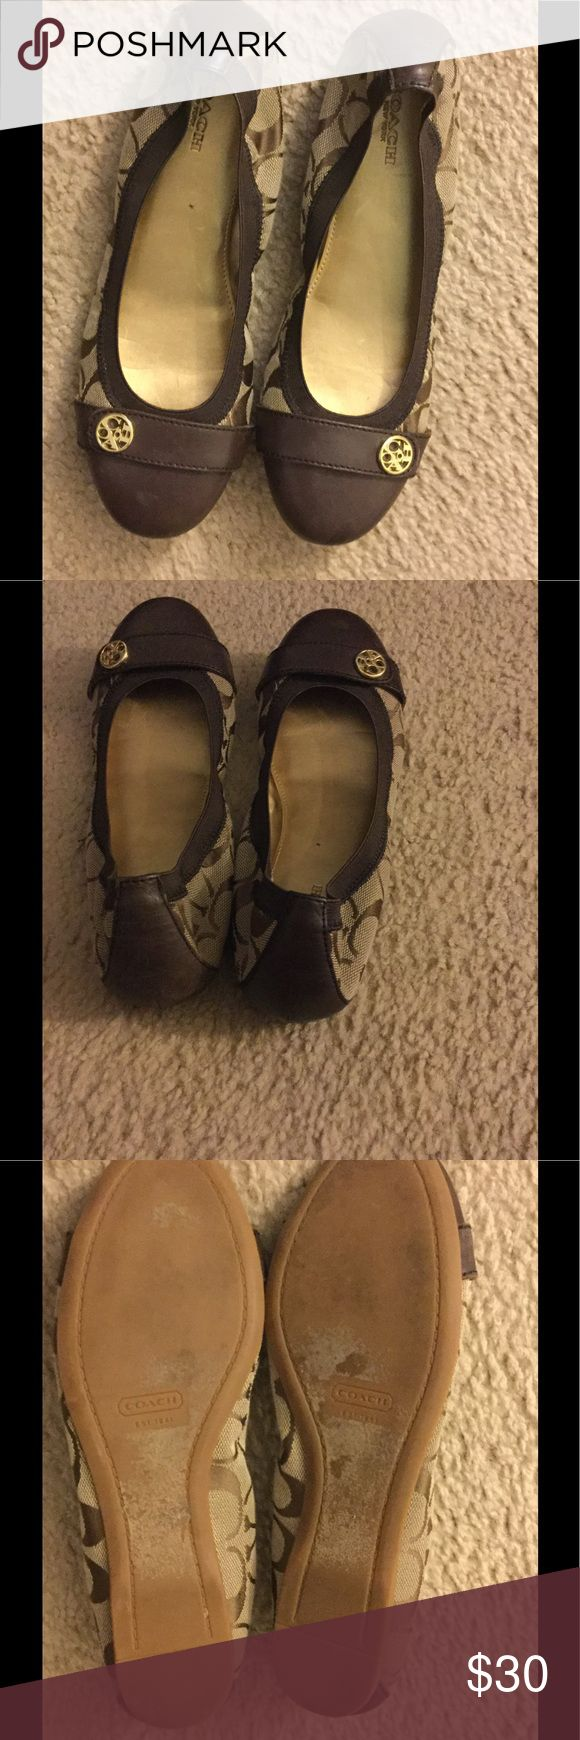 Coach ladies shoes Brown loafers Coach Shoes Flats & Loafers